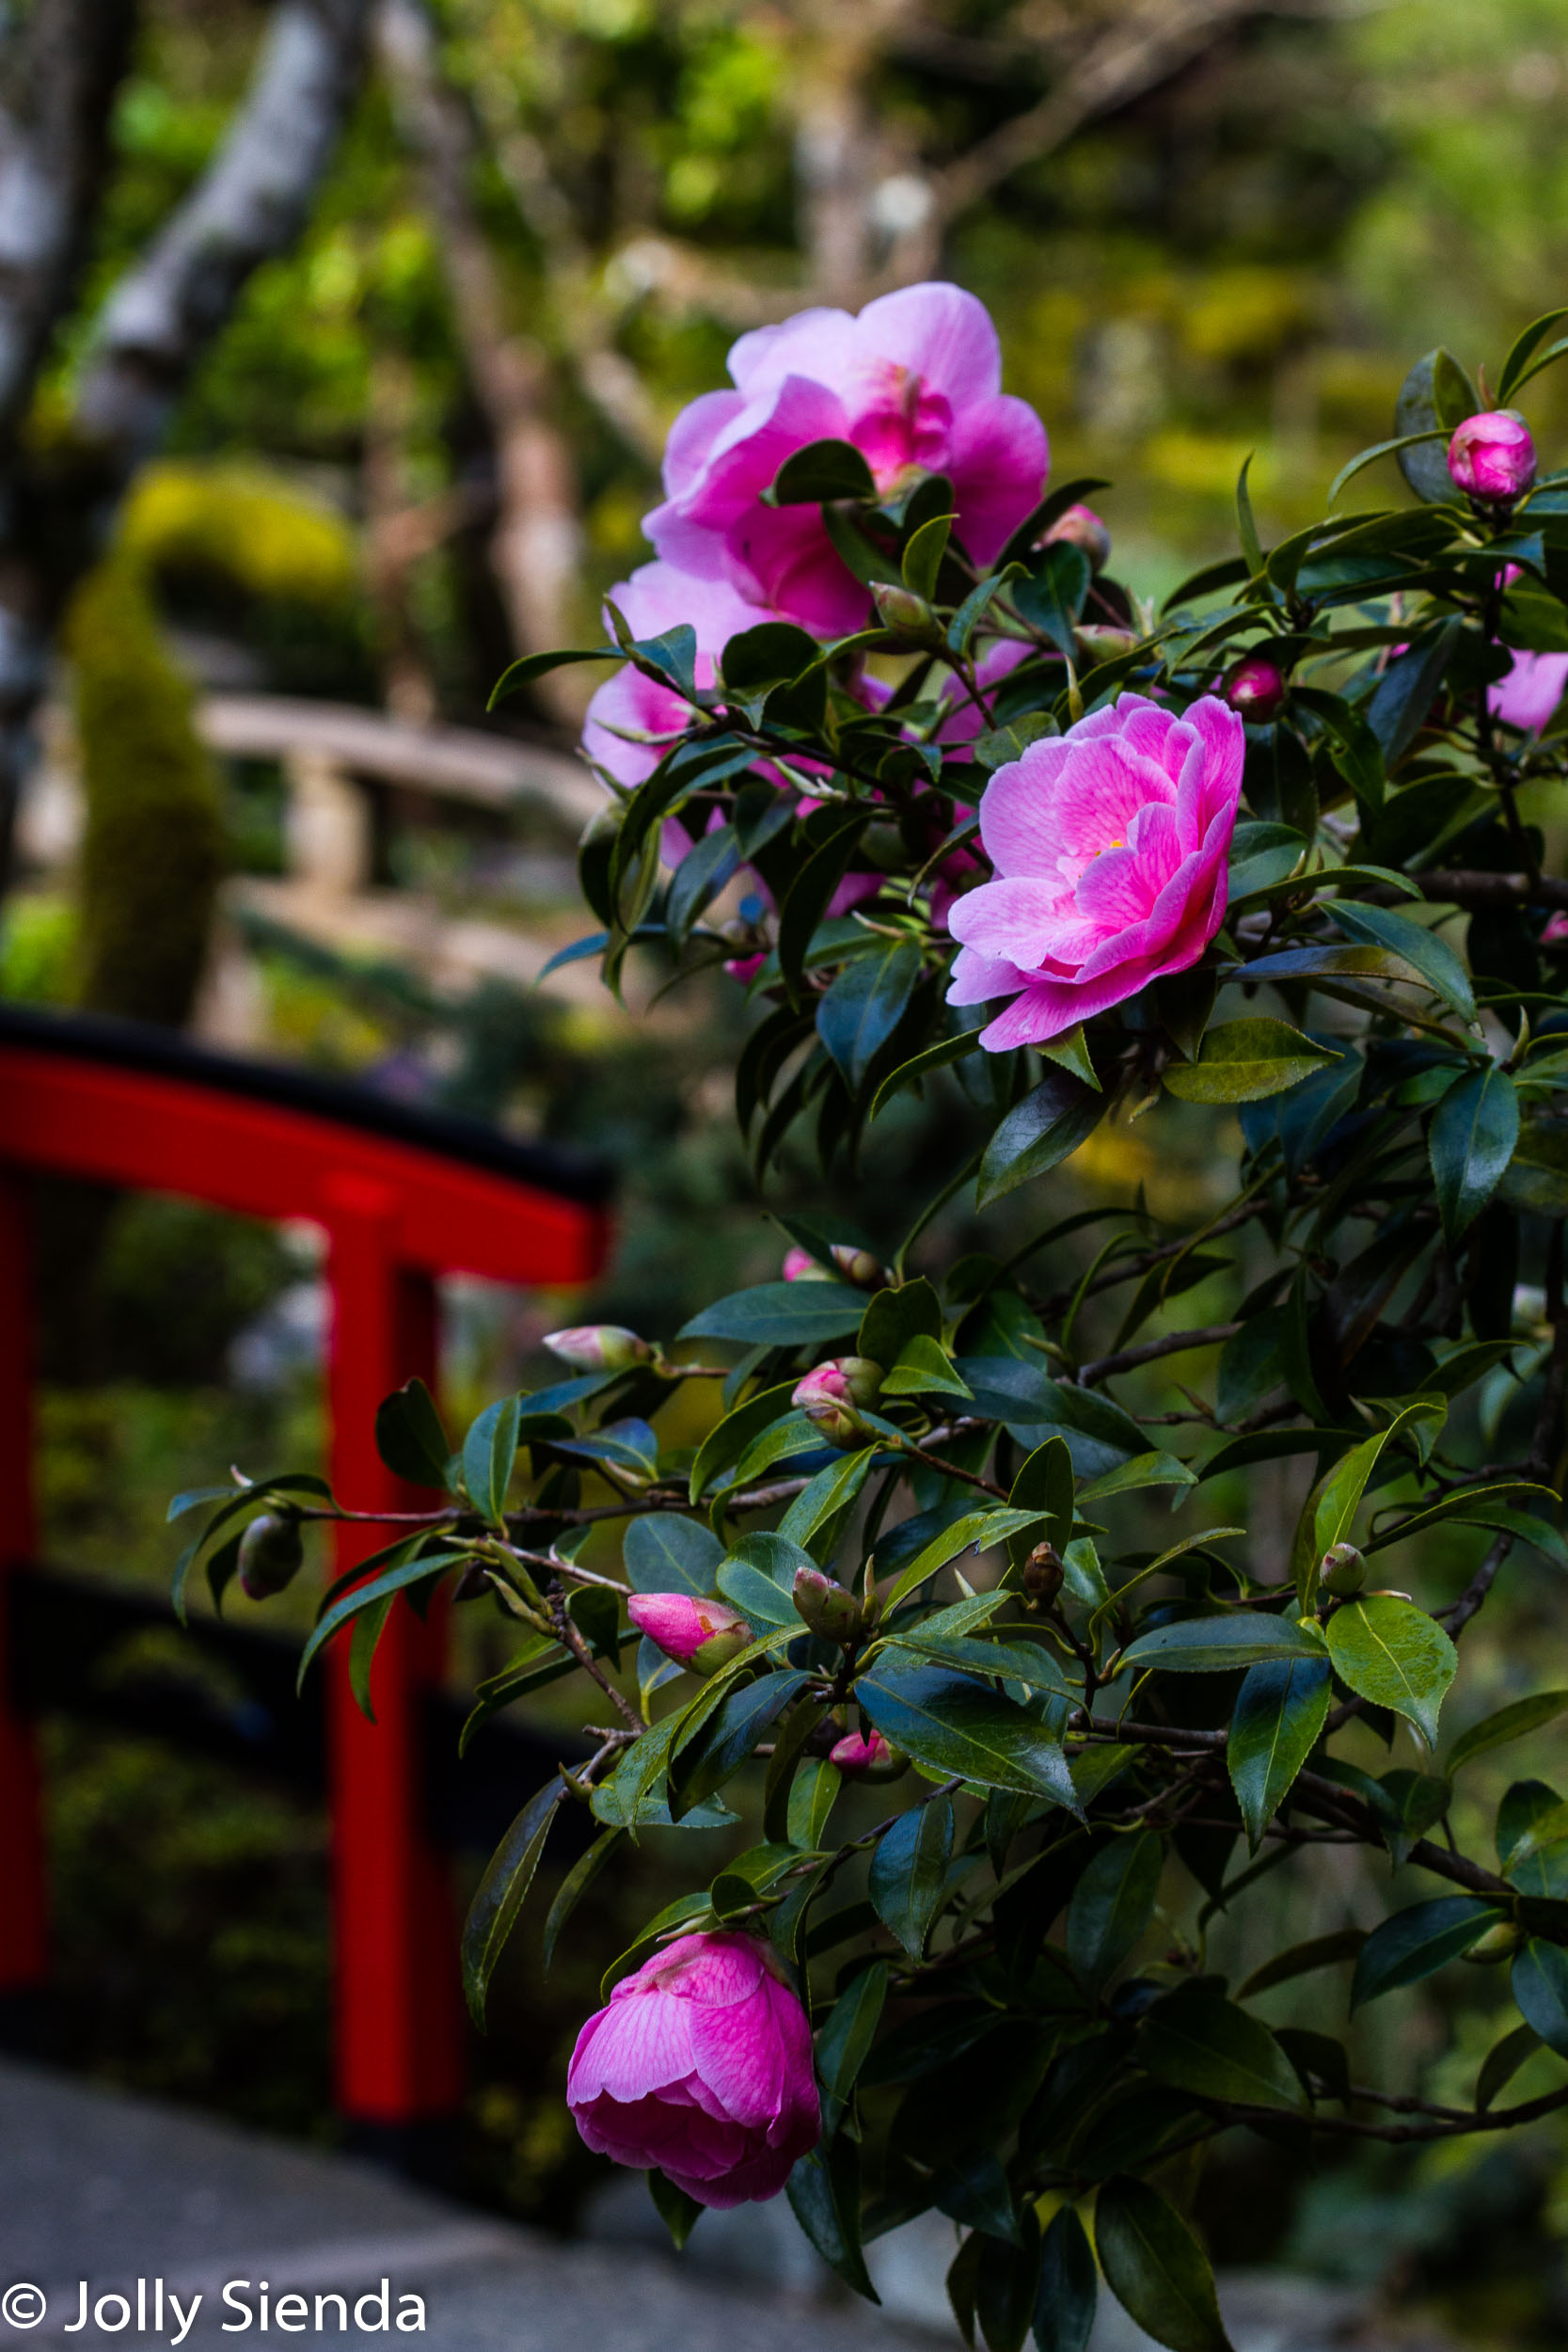 Bright pink carnellias flower bush overlooks a red Chinese bridg